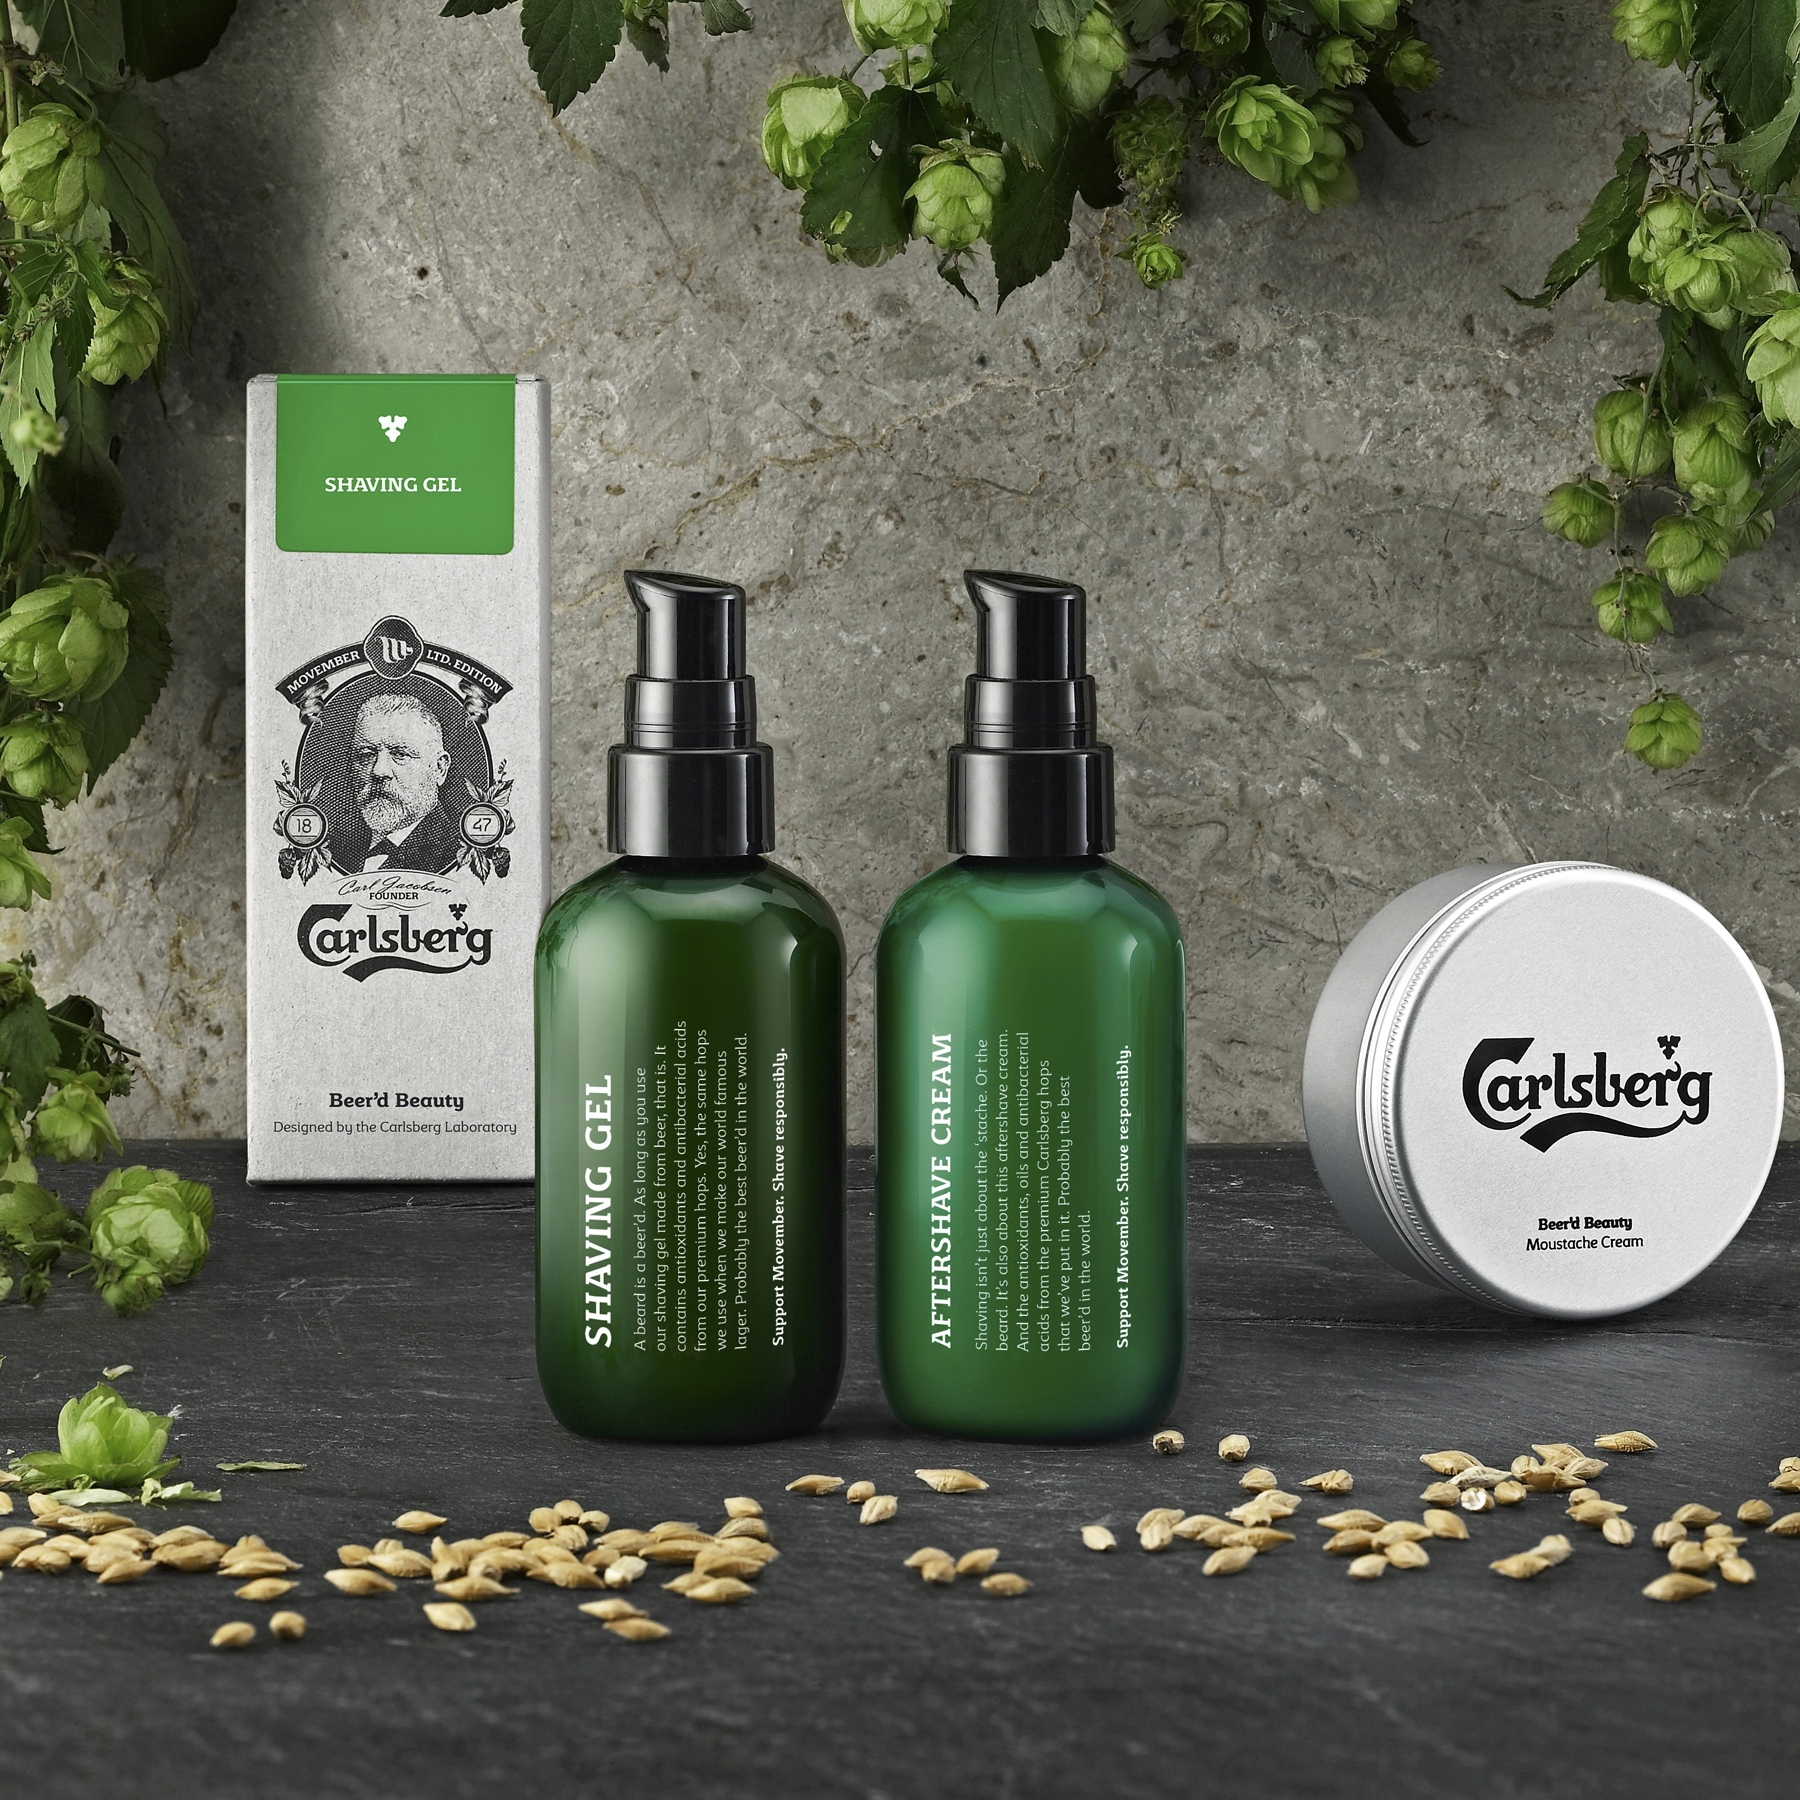 Carlsberg Beer'd Beauty Grooming Products